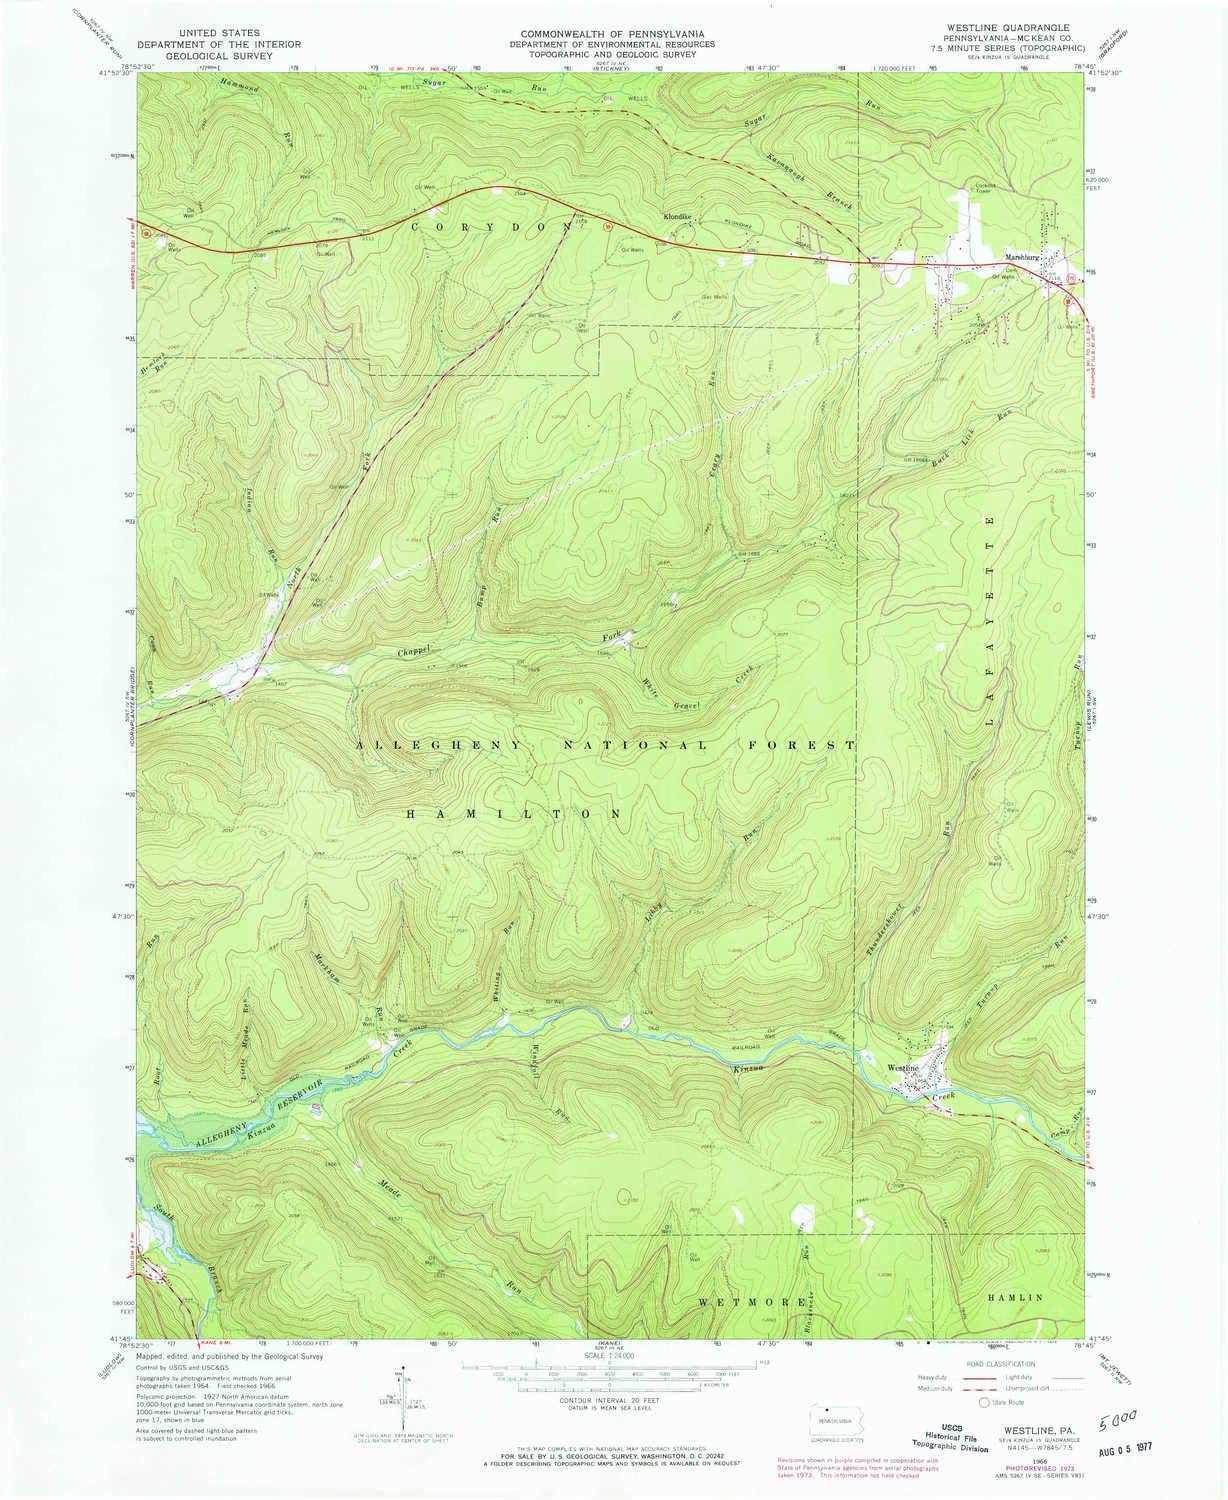 1977 1:24000 Scale 7.5 X 7.5 Minute YellowMaps Pushaw Lake ME topo map 26.8 x 21.5 in Updated 1977 Historical